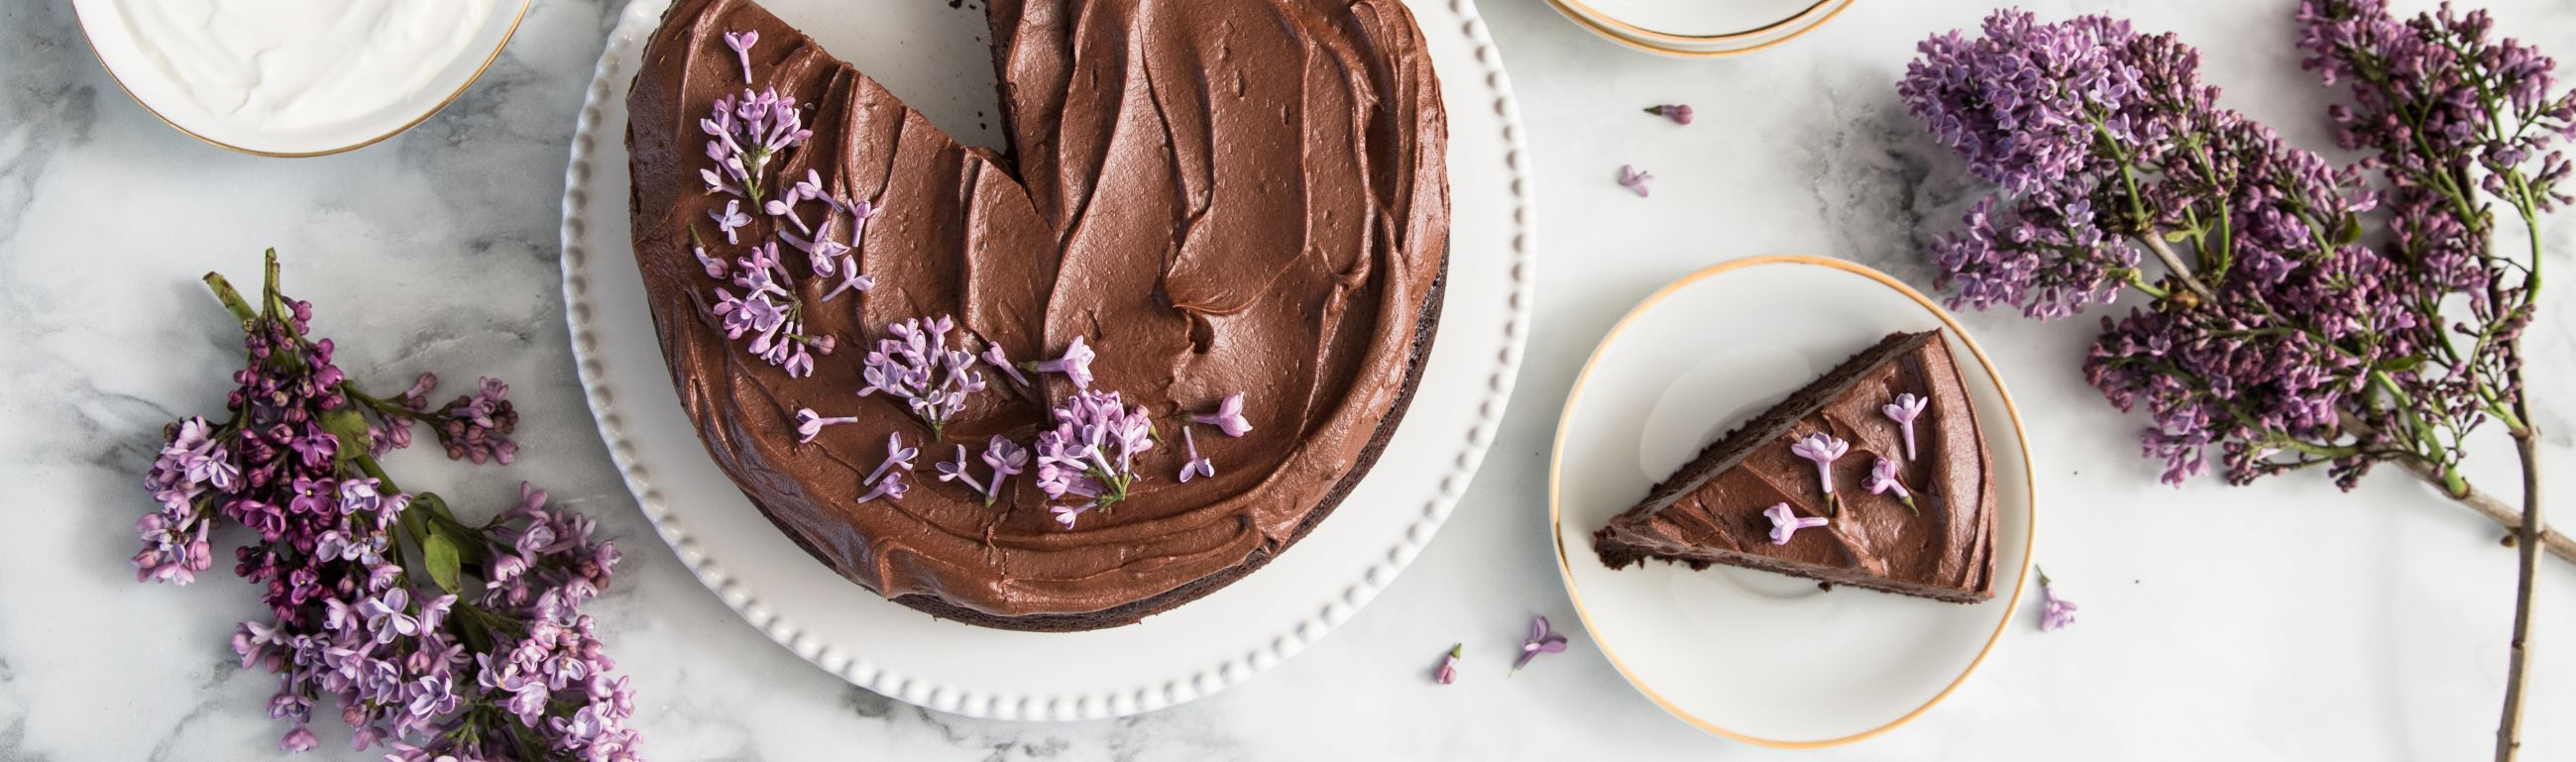 FAGE Double Chocolate Cake